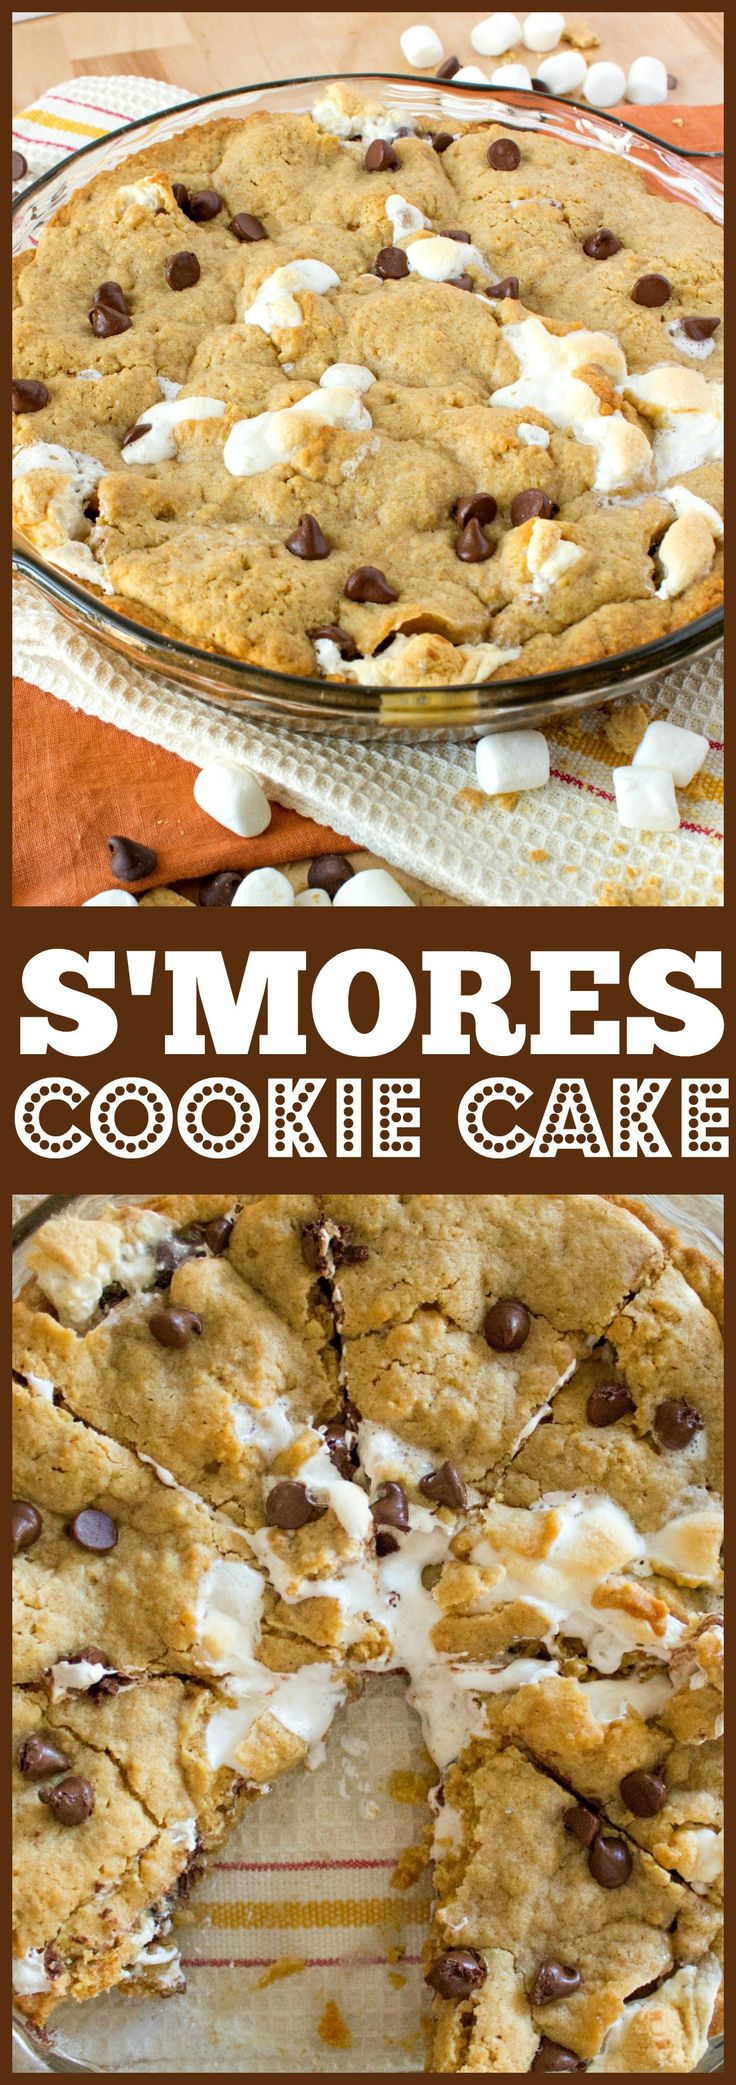 Your favorite campfire snack, now in cookie cake form! The crust is made from brown sugar cookie and graham crackers and filled with tons of chocolate and marshmallow. Yummmm!